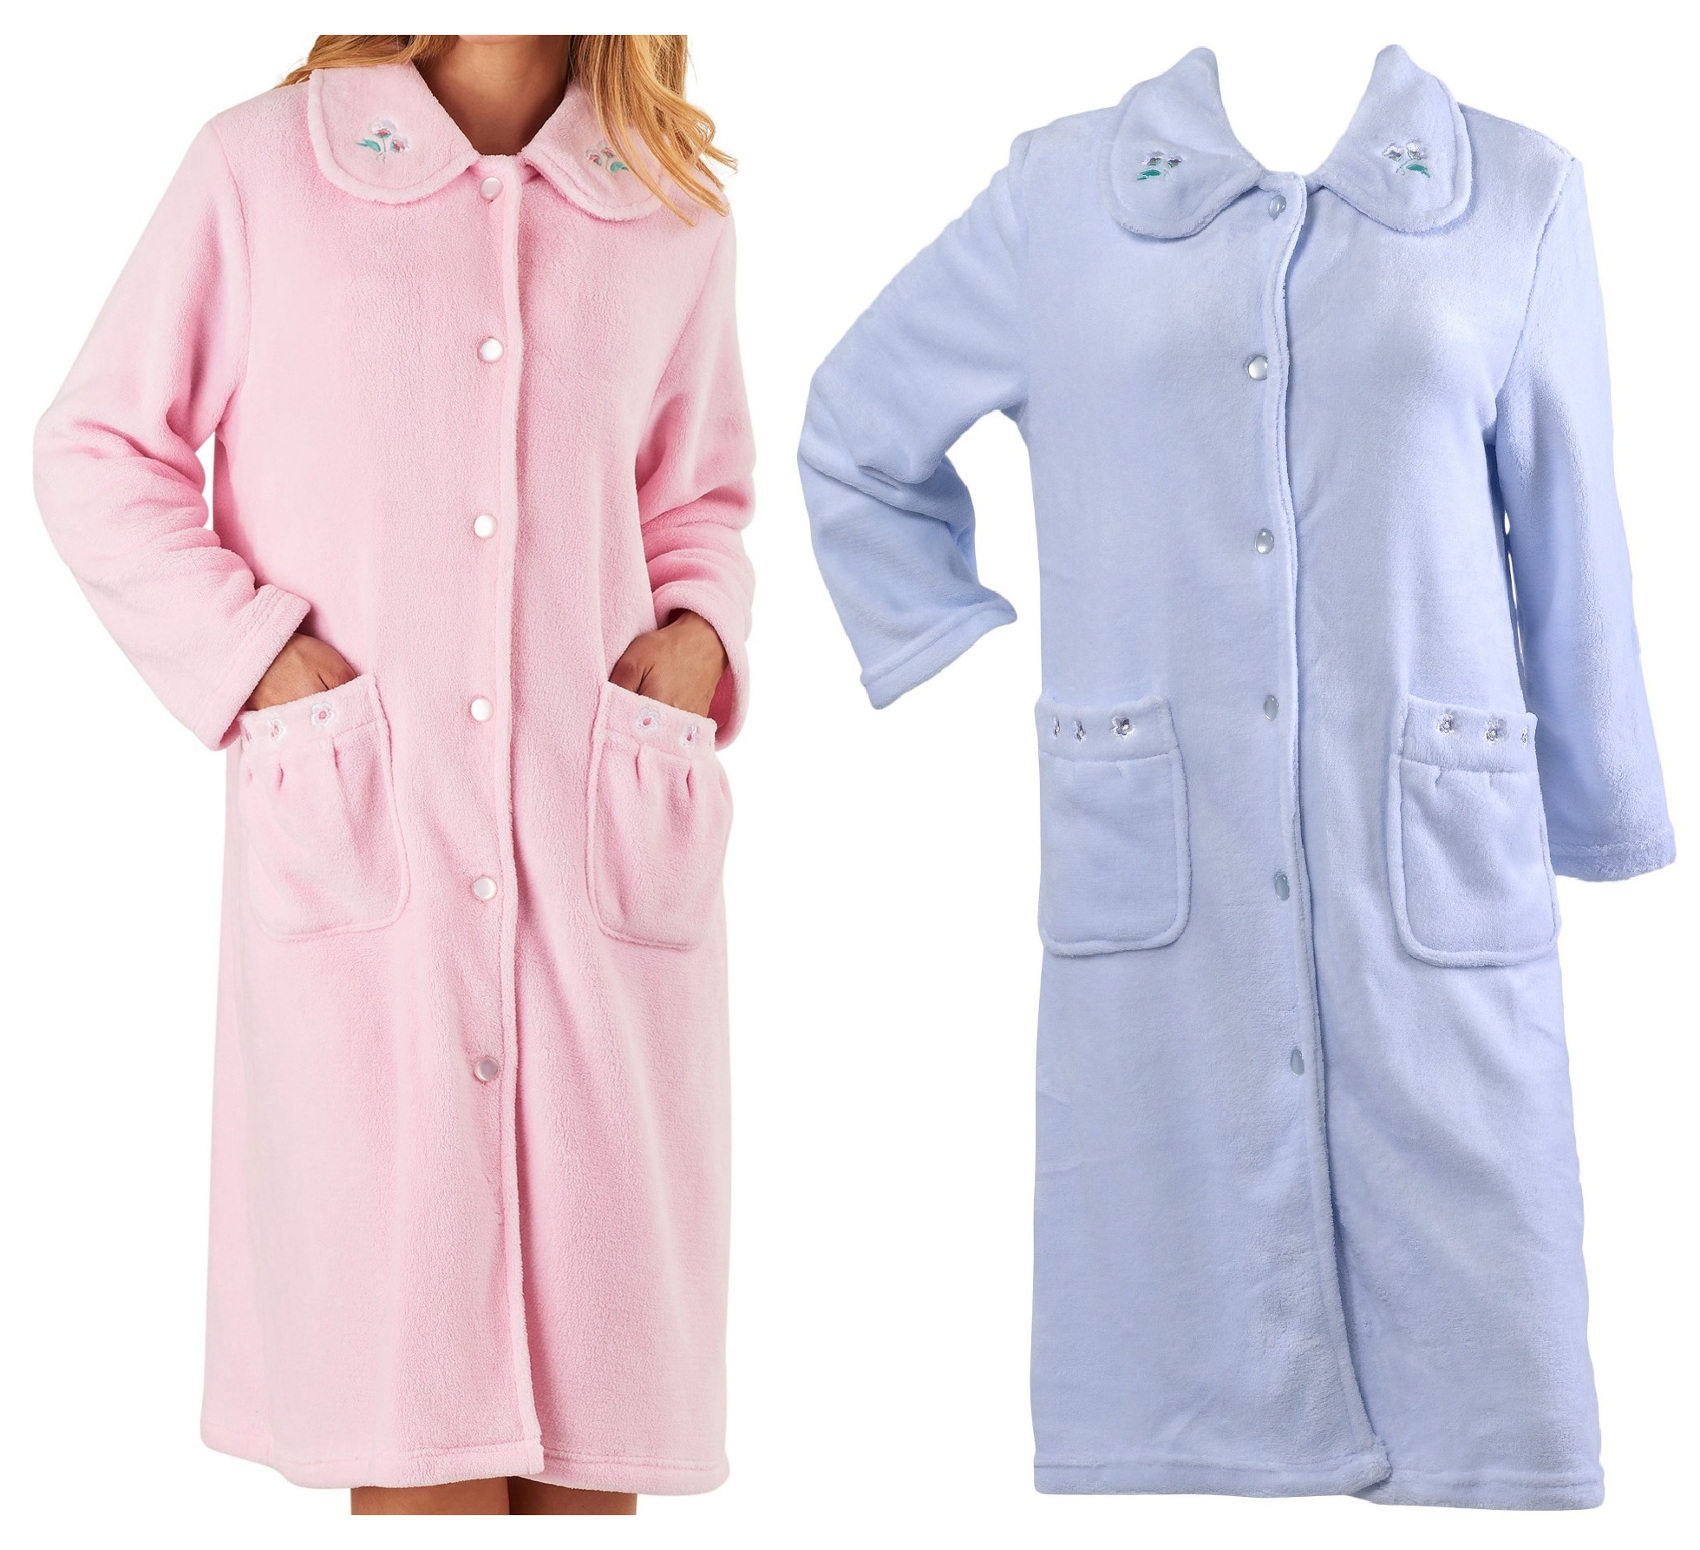 Dressing Gown Womens Floral Collar Button Up Bath Robe Slenderella ...